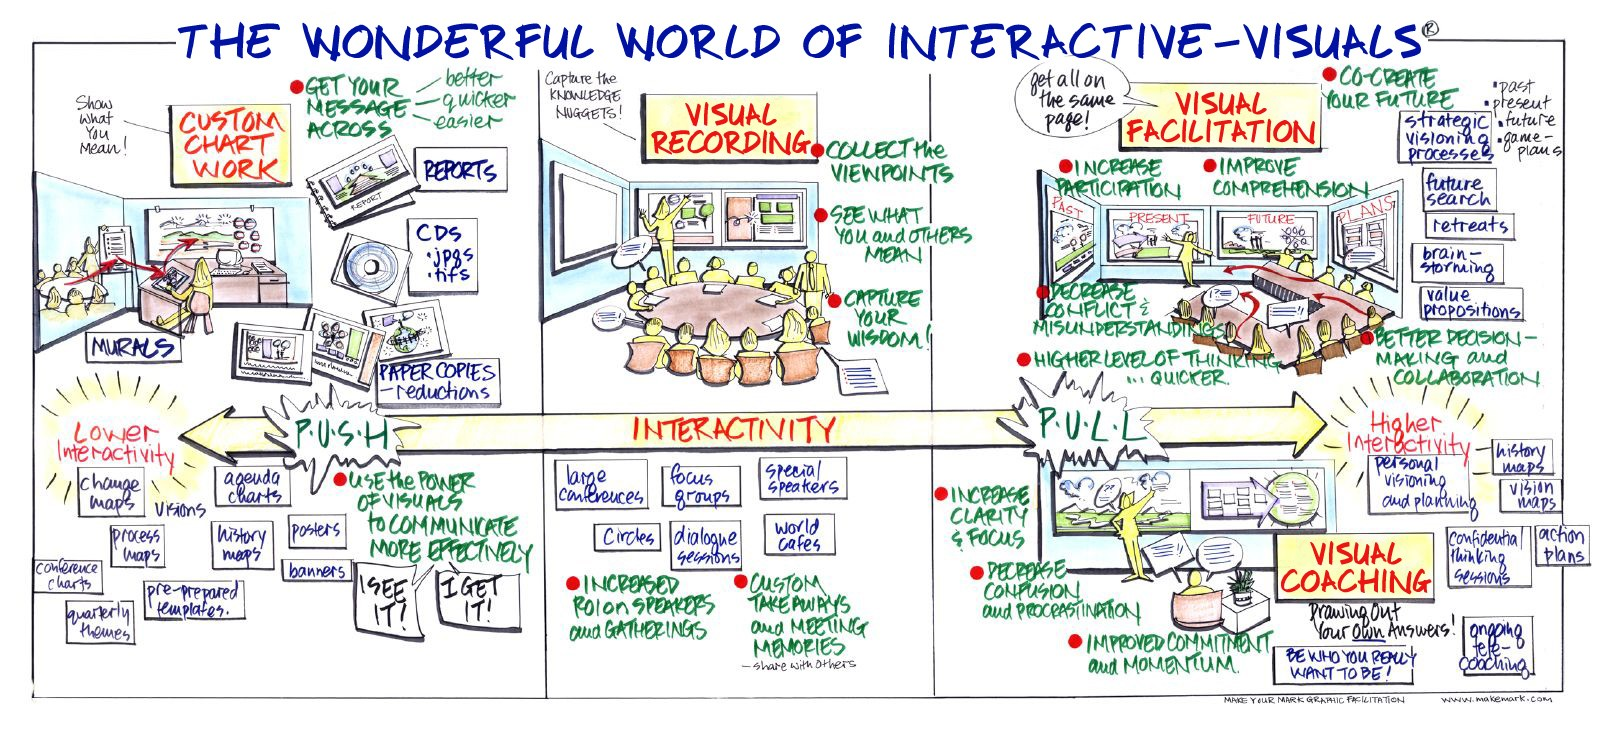 The Wonderful World of Interactive-Visuals